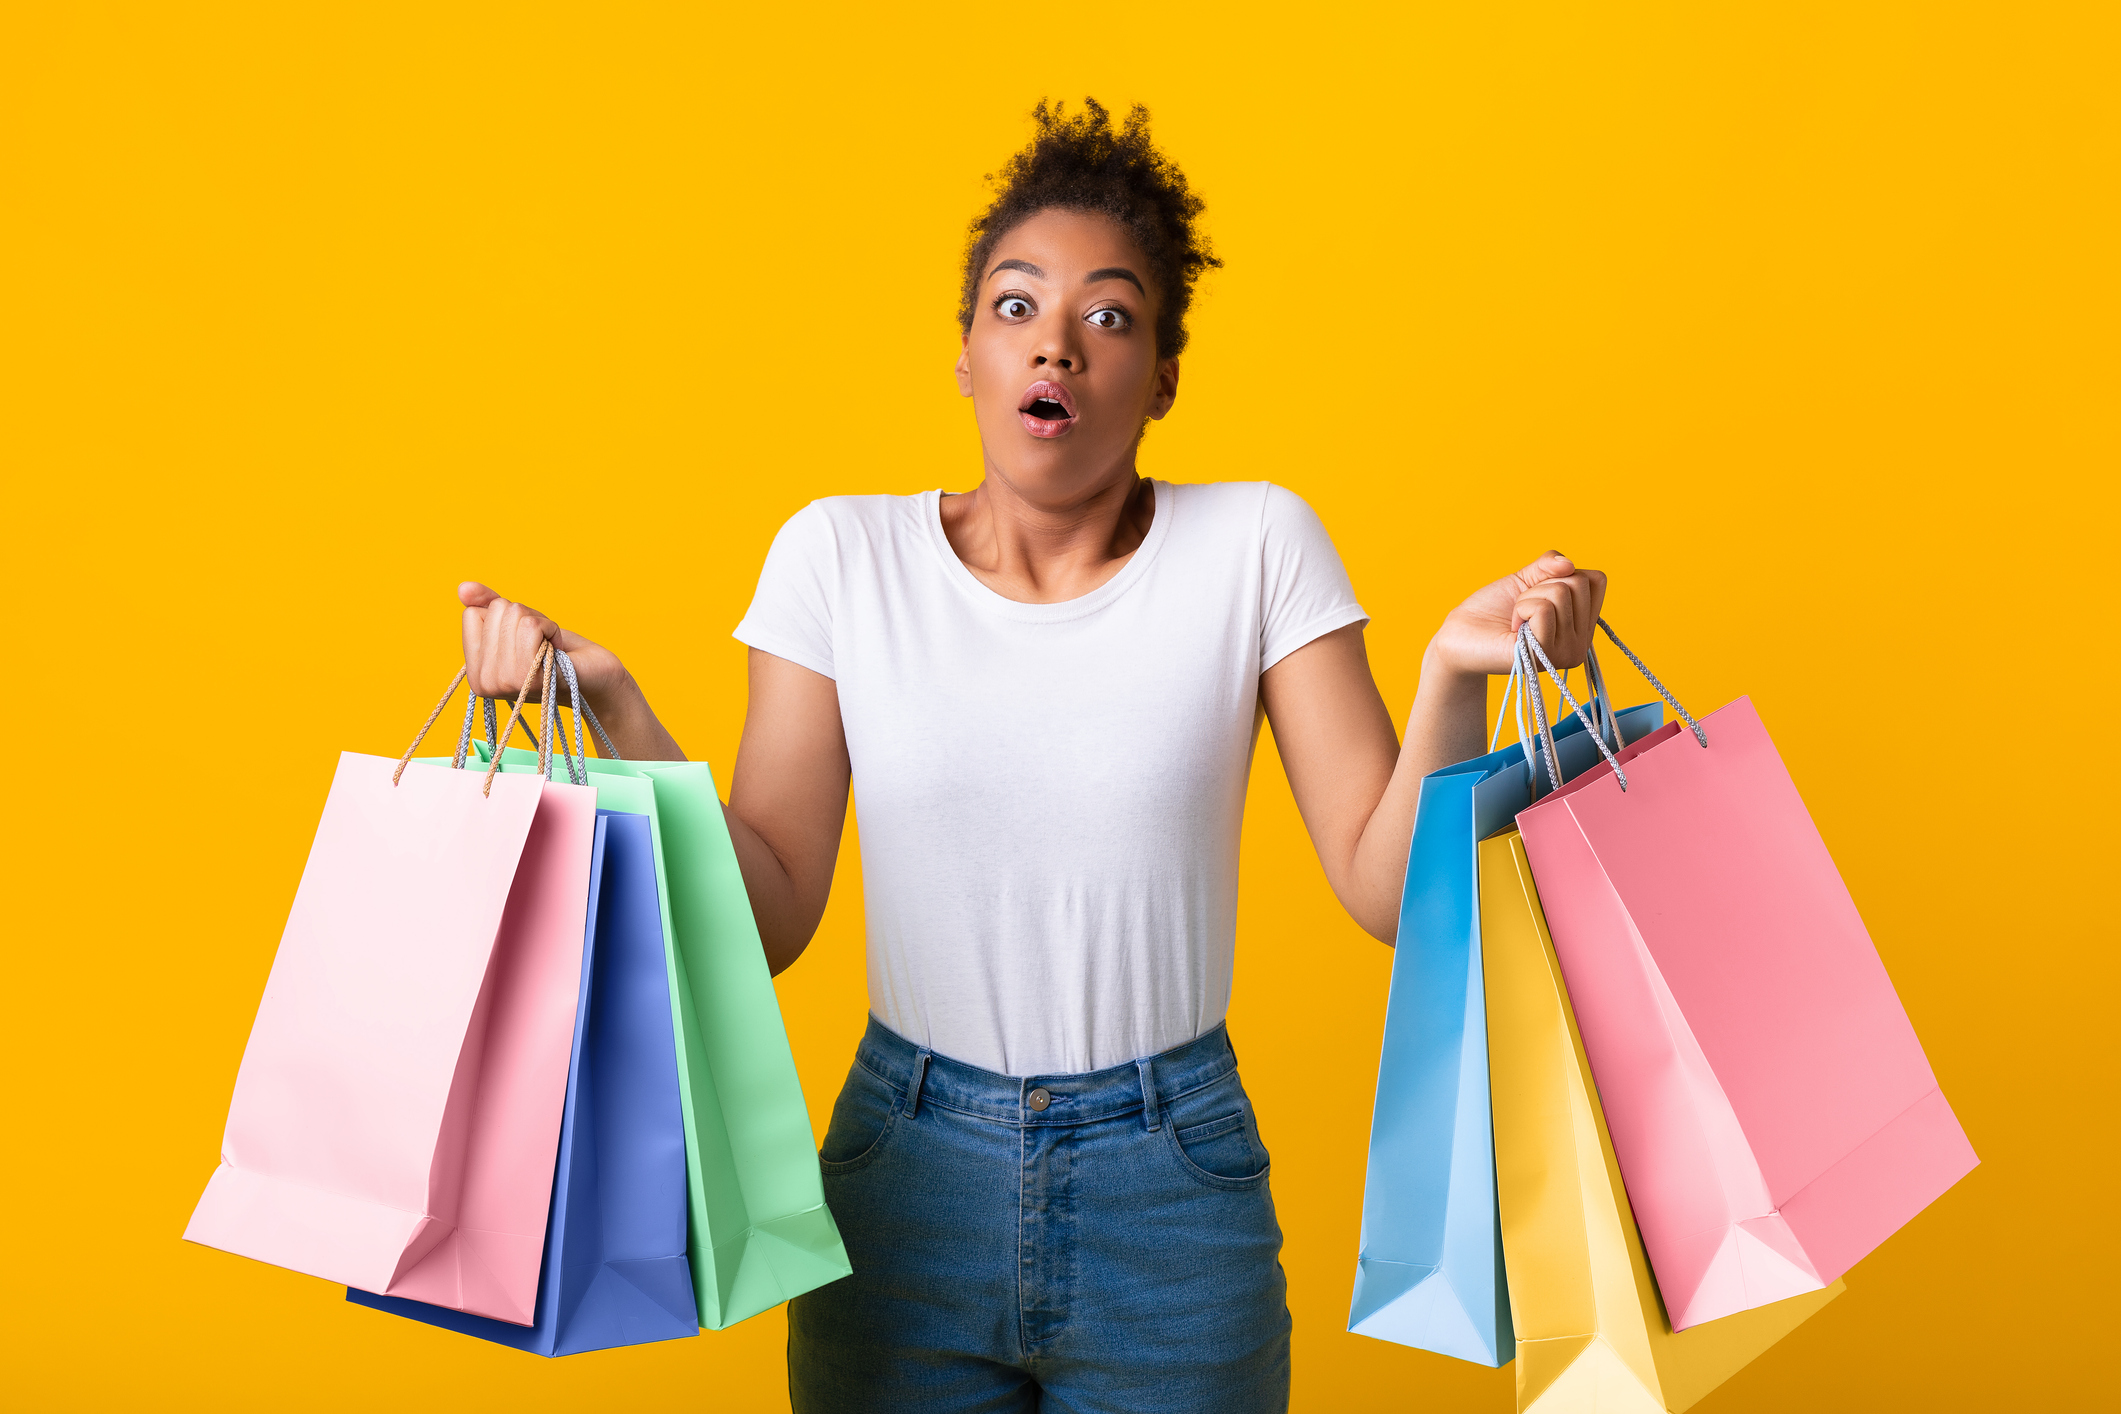 Portrait of a lady holding shopping bags